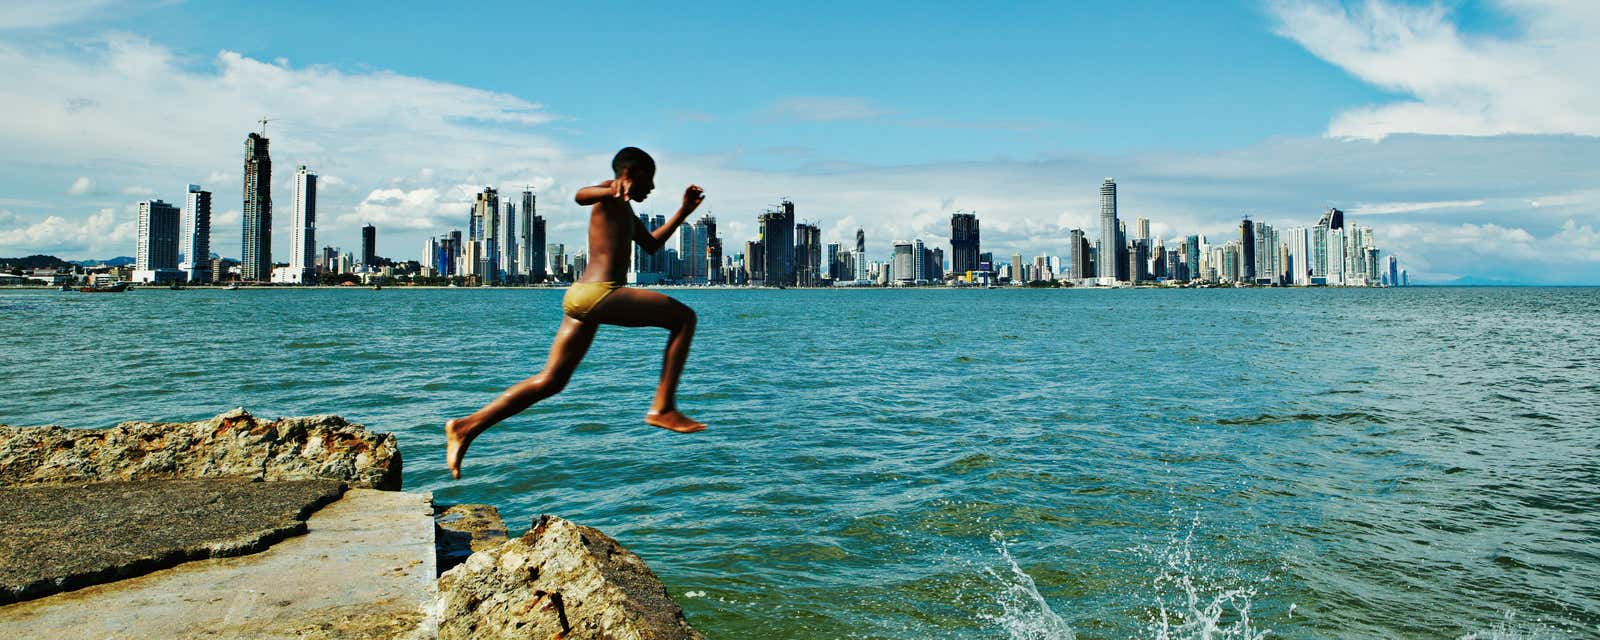 A young boy jumps into the bay of Casco Viejo, Panama City.